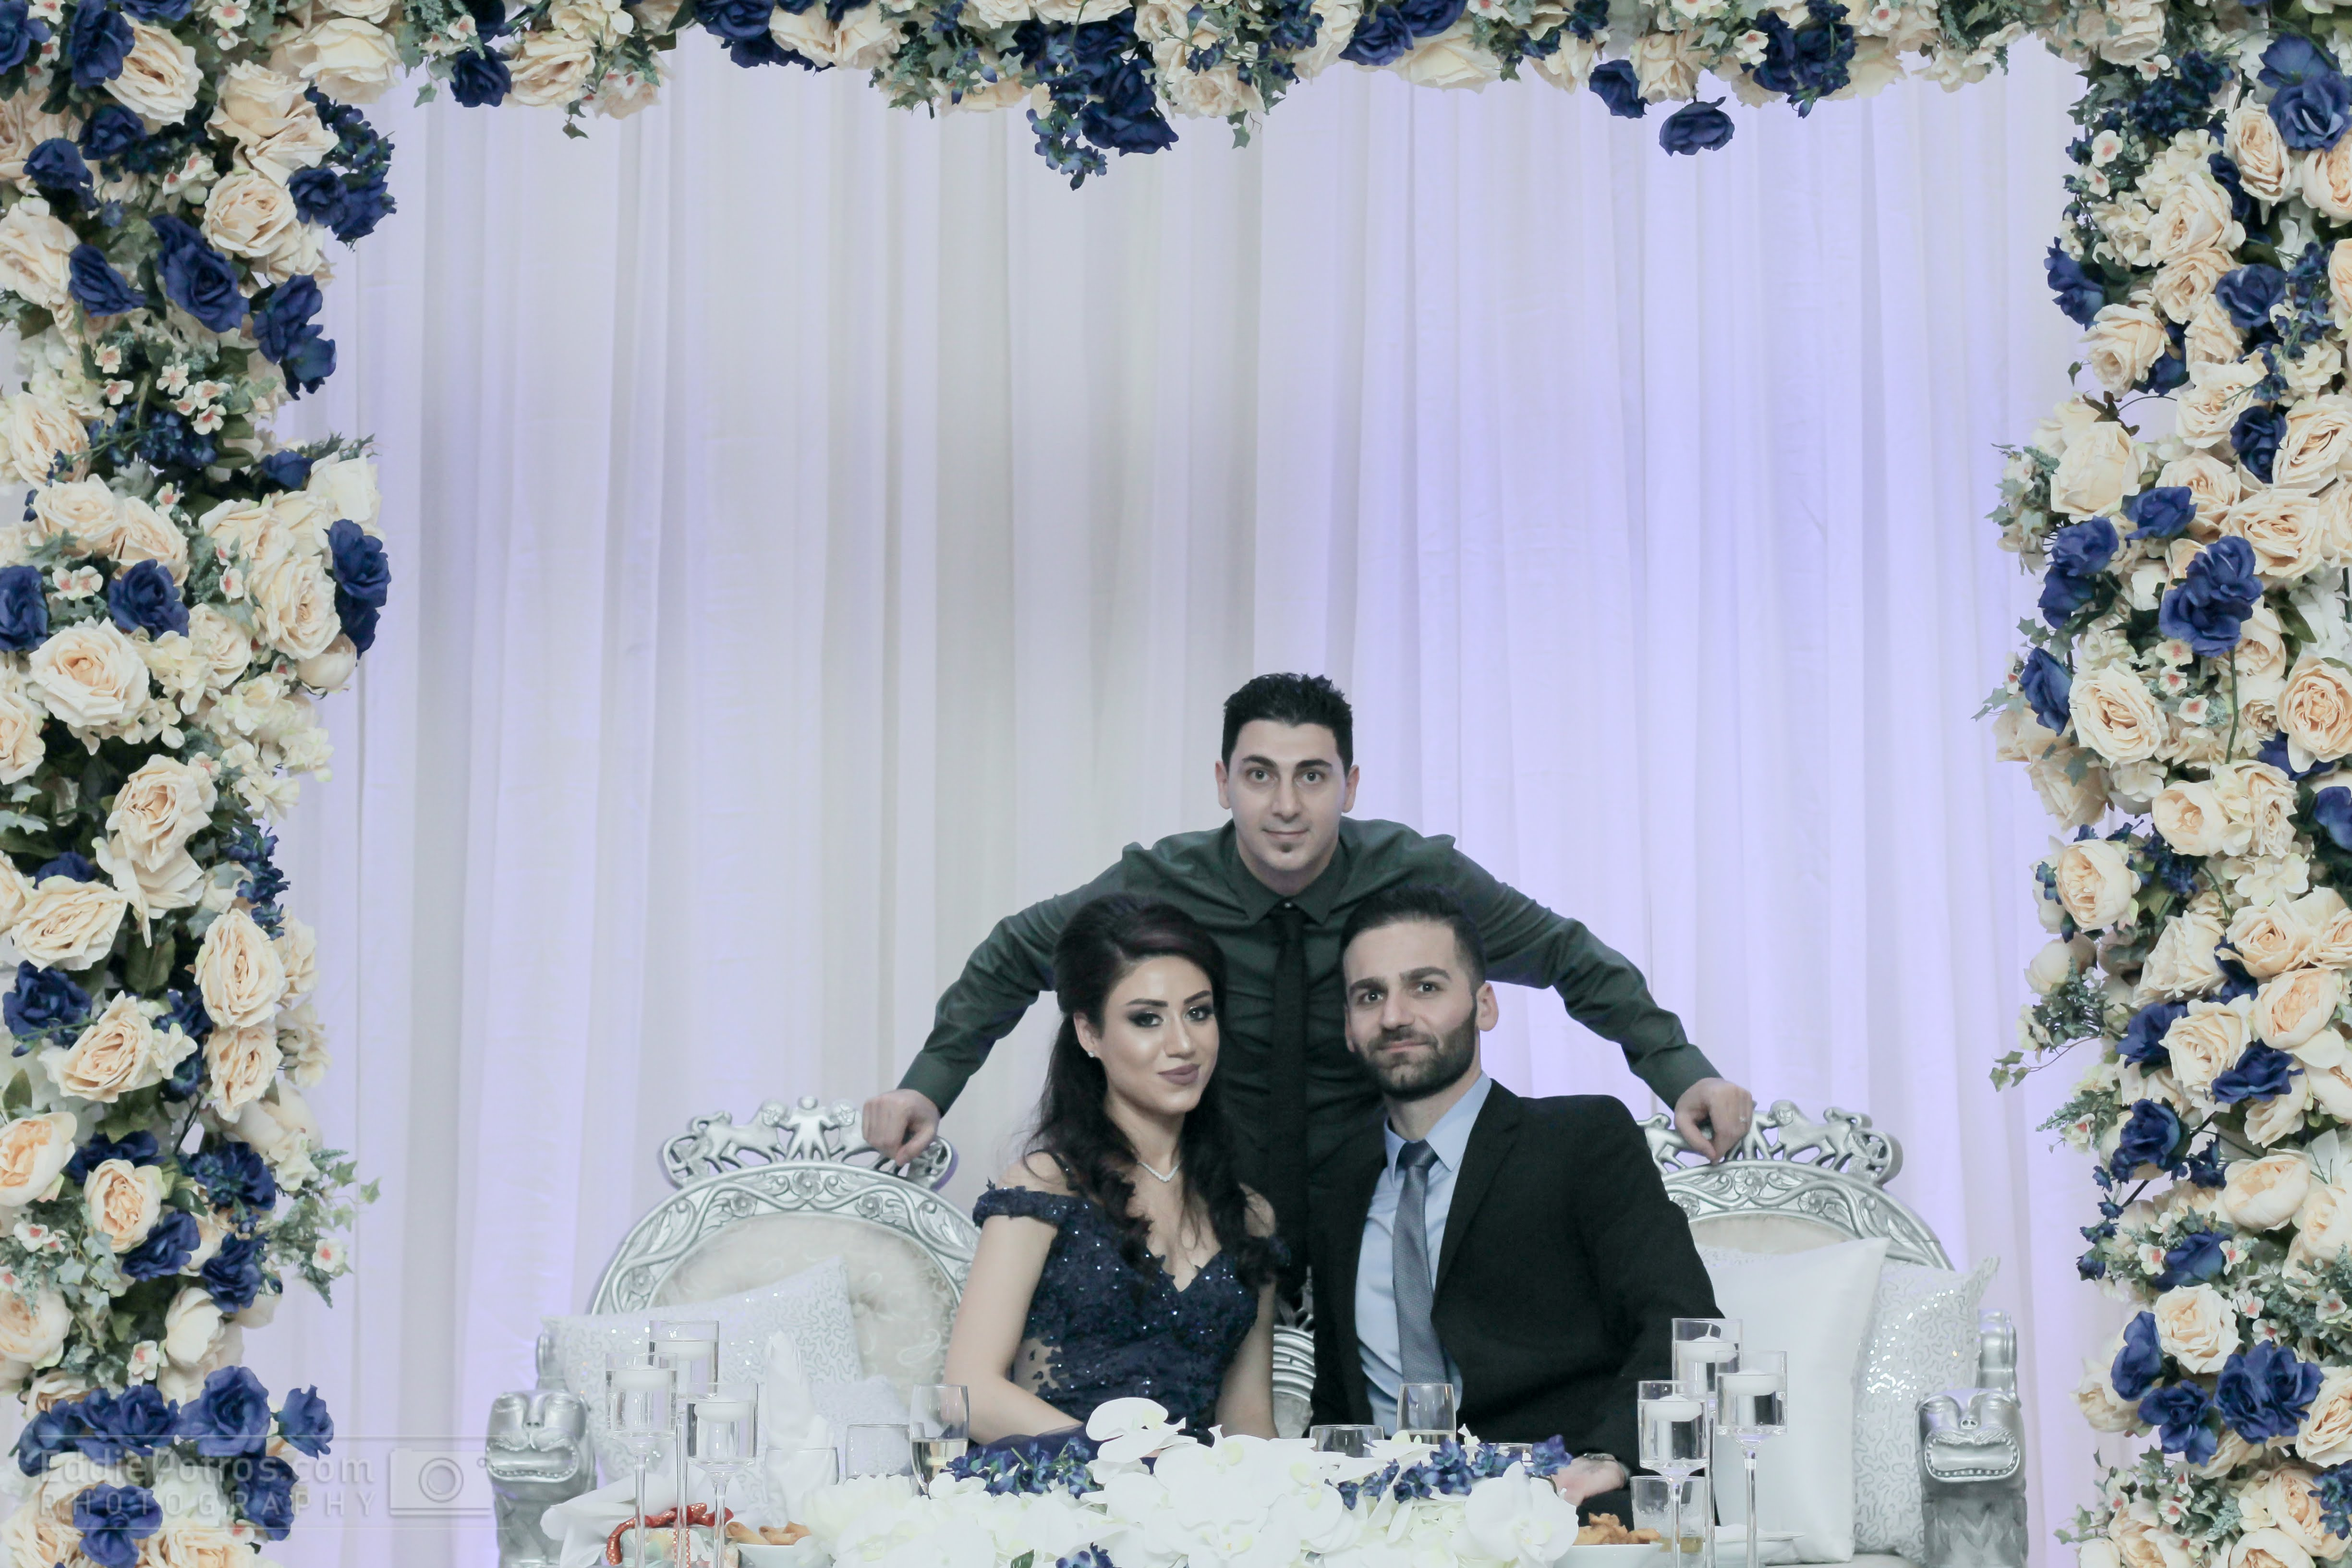 Congratulations Fadi & Noor on your Engagement